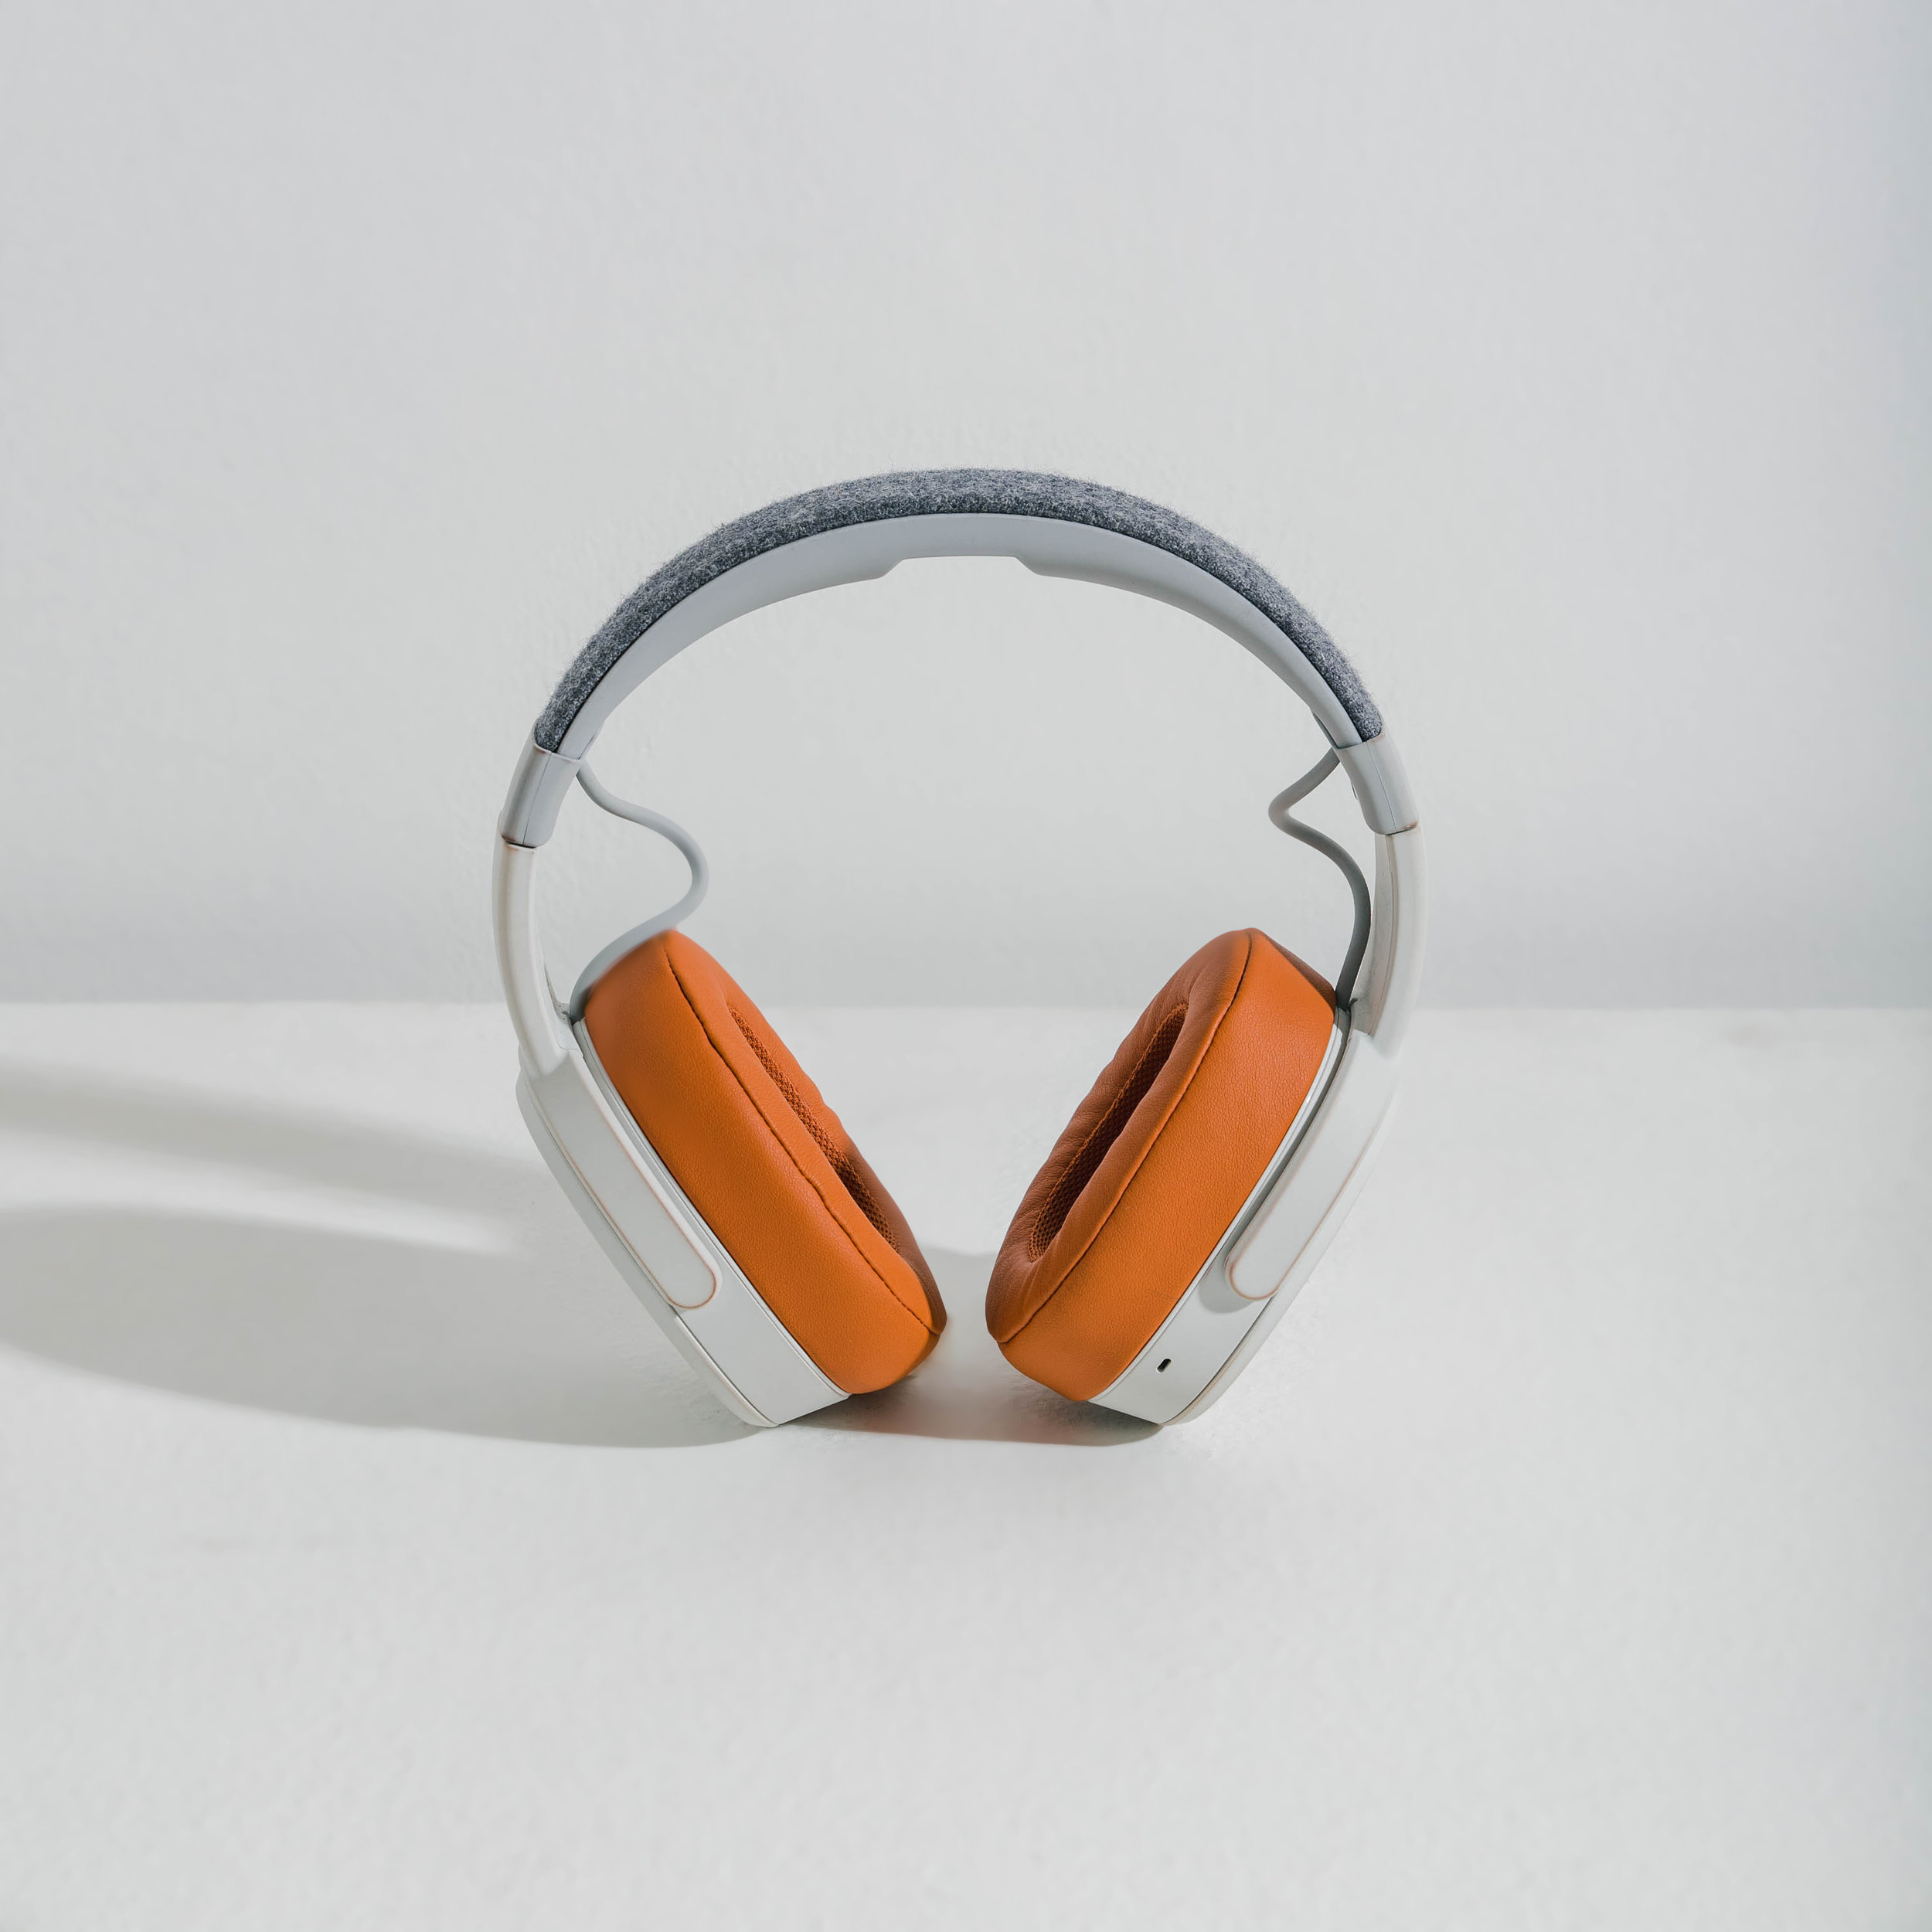 20. SKULLCANDY Crusher Wireless